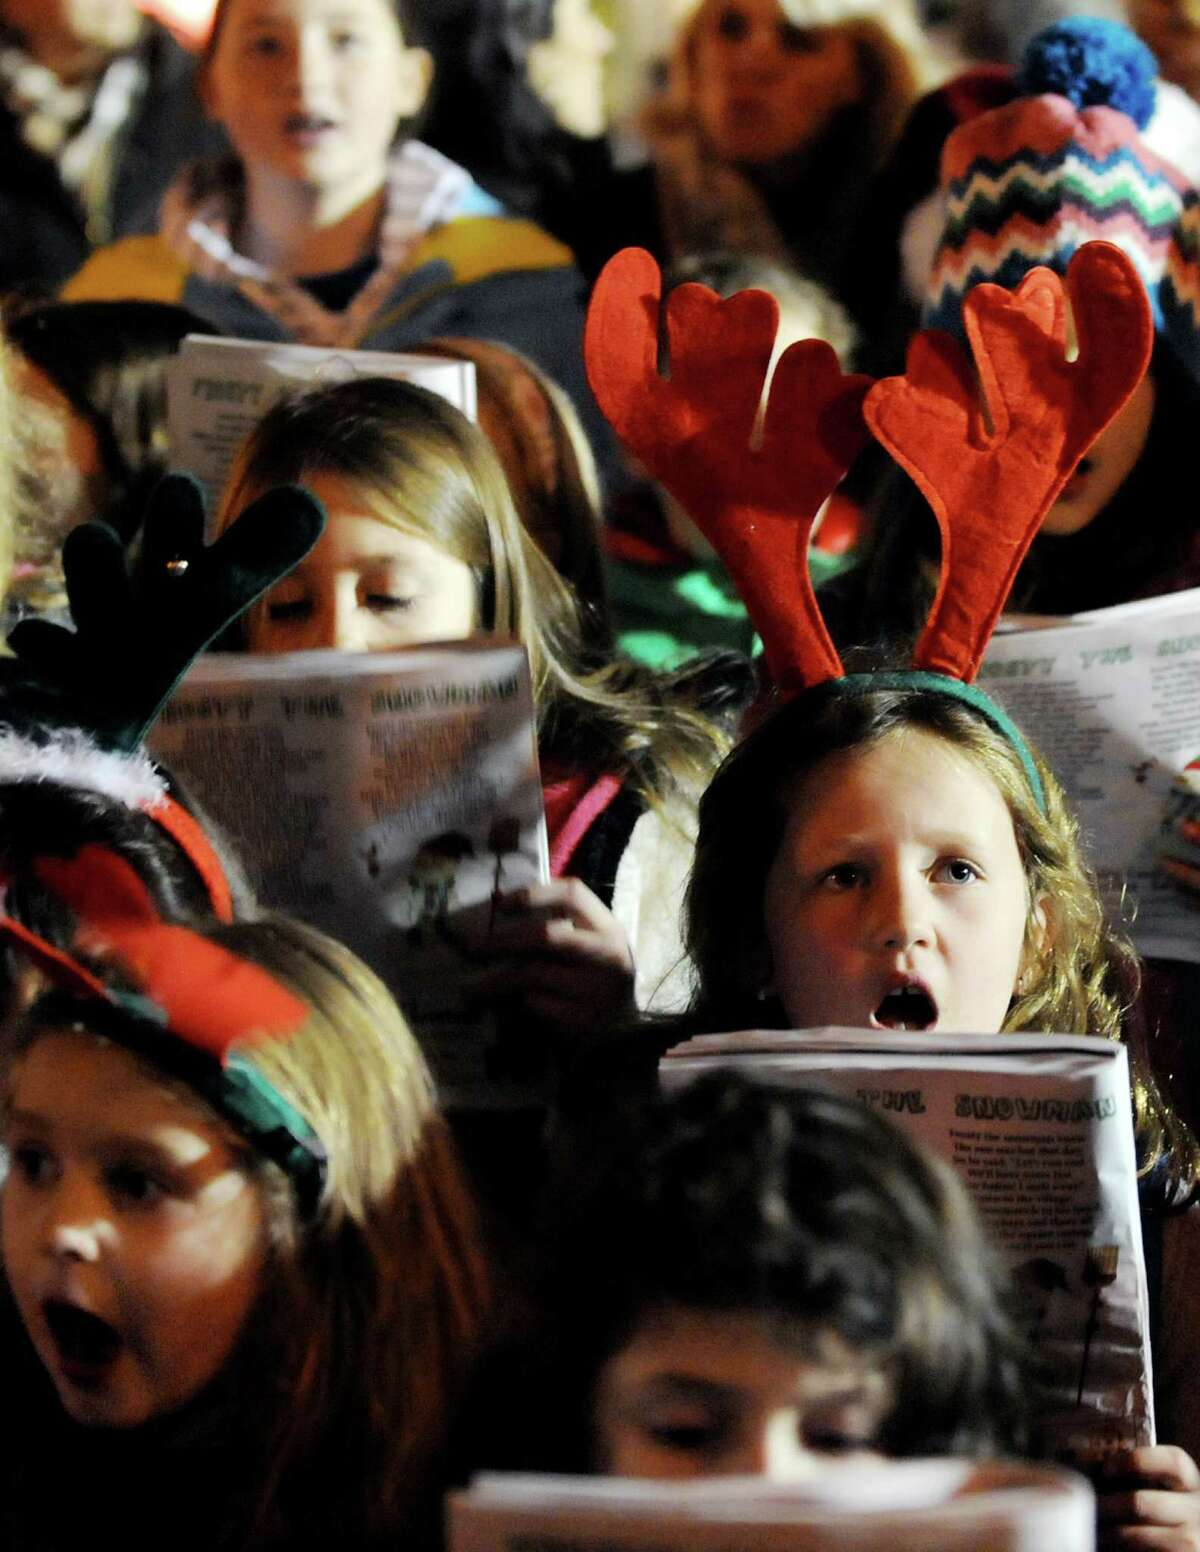 Saratoga Area Girl Scouts sing Chrismas carols during the Victorian Streetwalk on Thursday, Dec. 5, 2013, in Saratoga Springs, N.Y. (Cindy Schultz / Times Union)